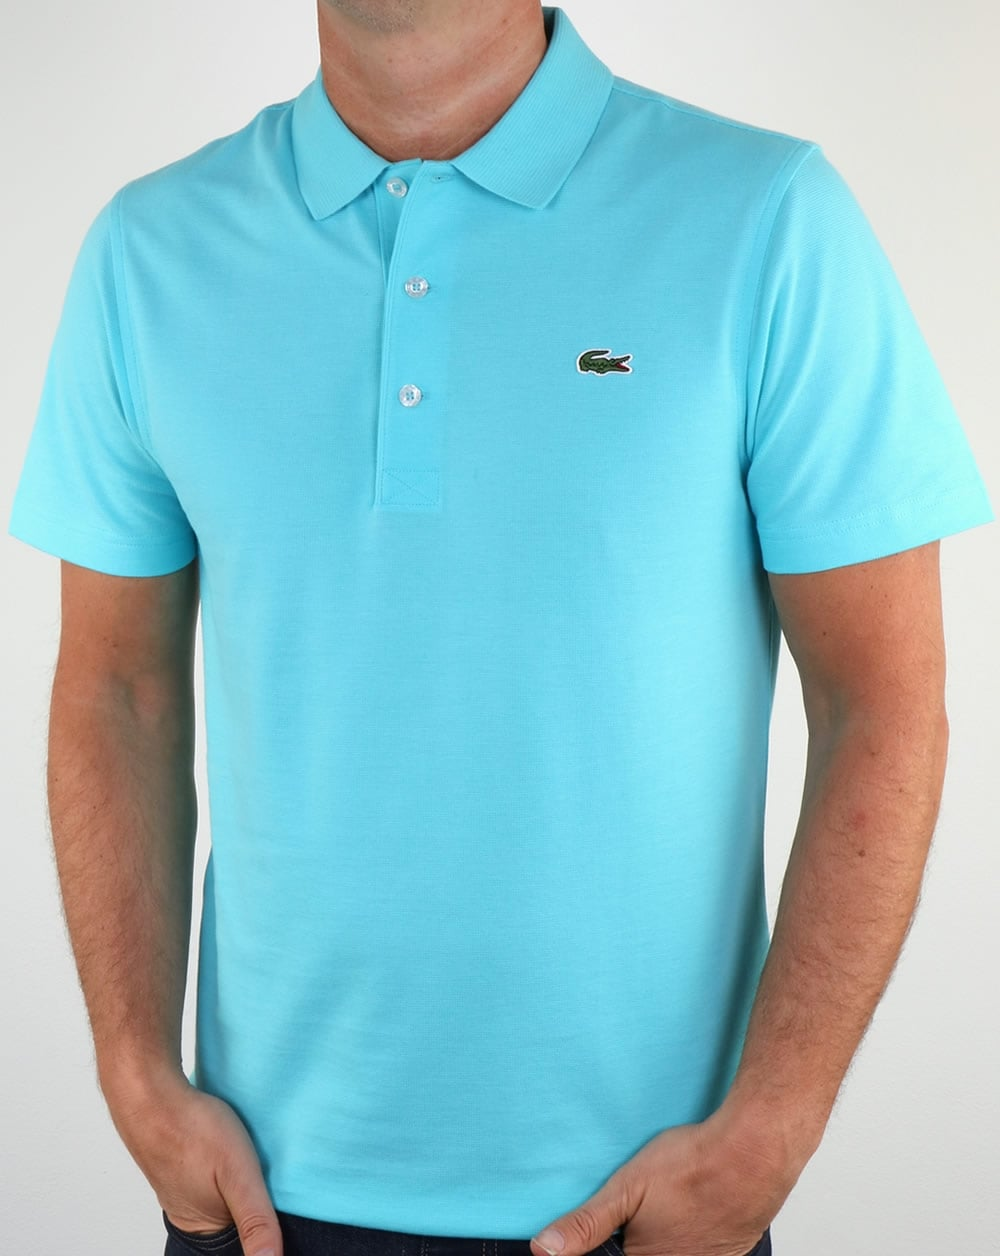 Lacoste ultra lightweight knit polo shirt haiti blue men 39 s for Order company polo shirts